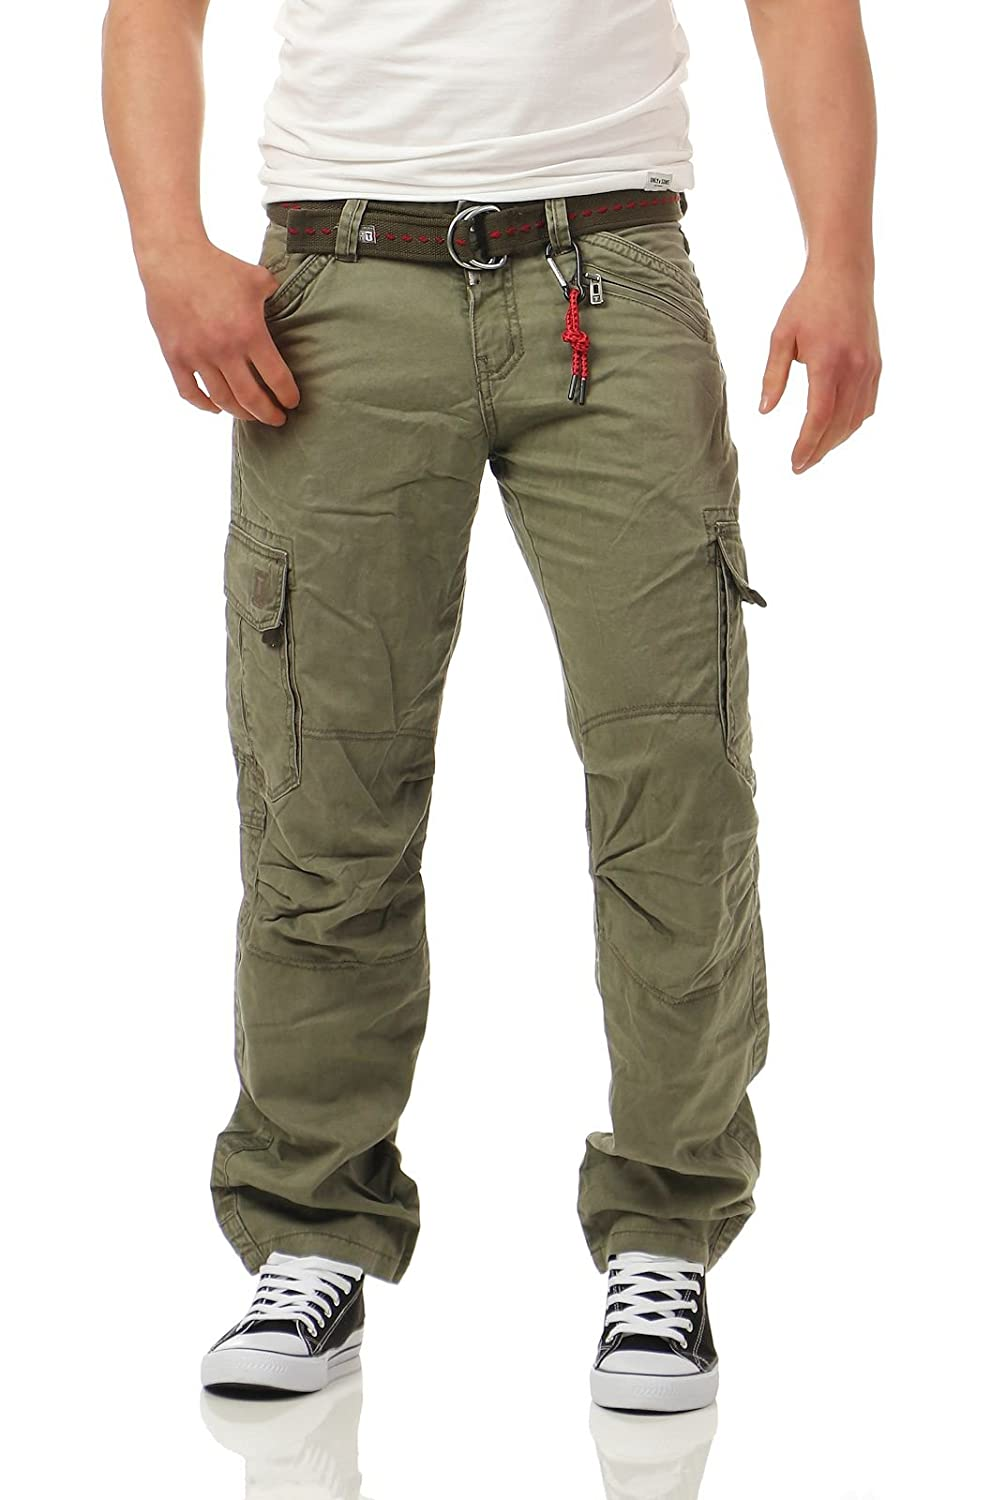 Timezone Herren Benito Cargo Loose Fit Jeans Ivy Olive